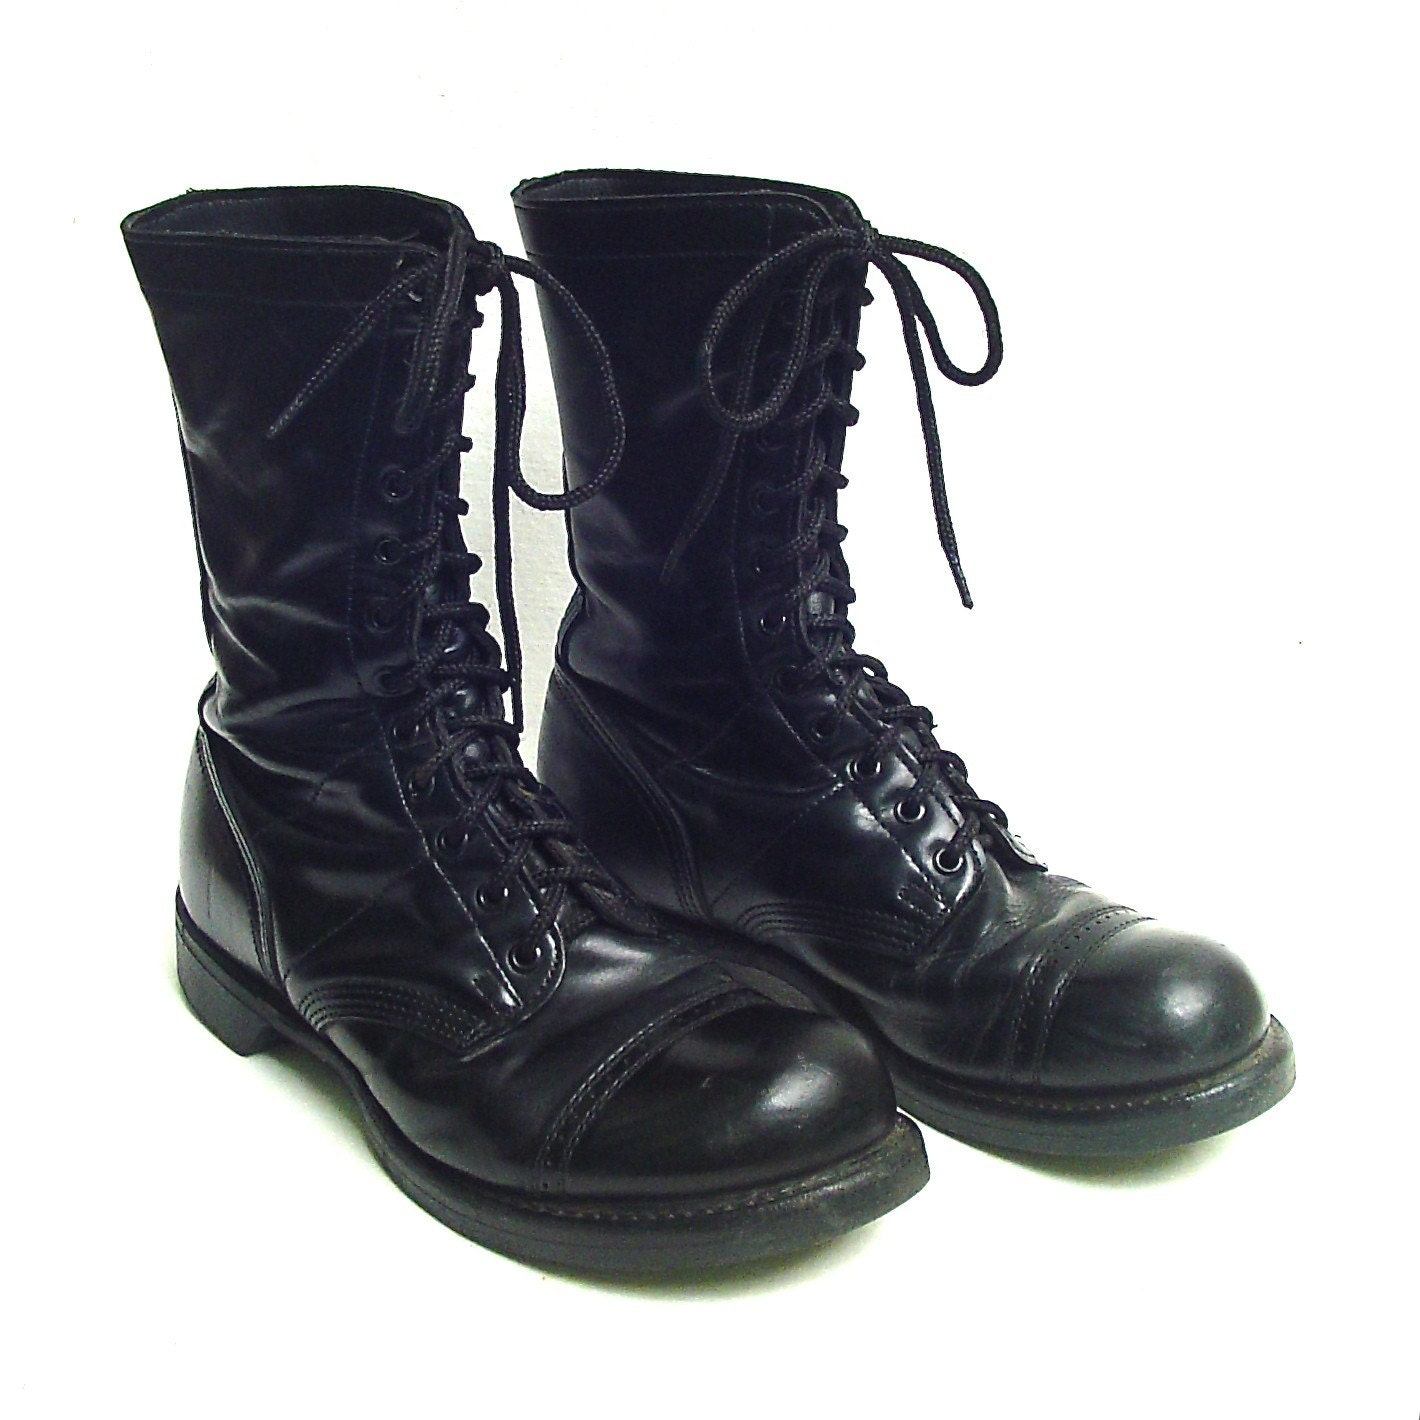 Mens Black Leather Boots - Cr Boot